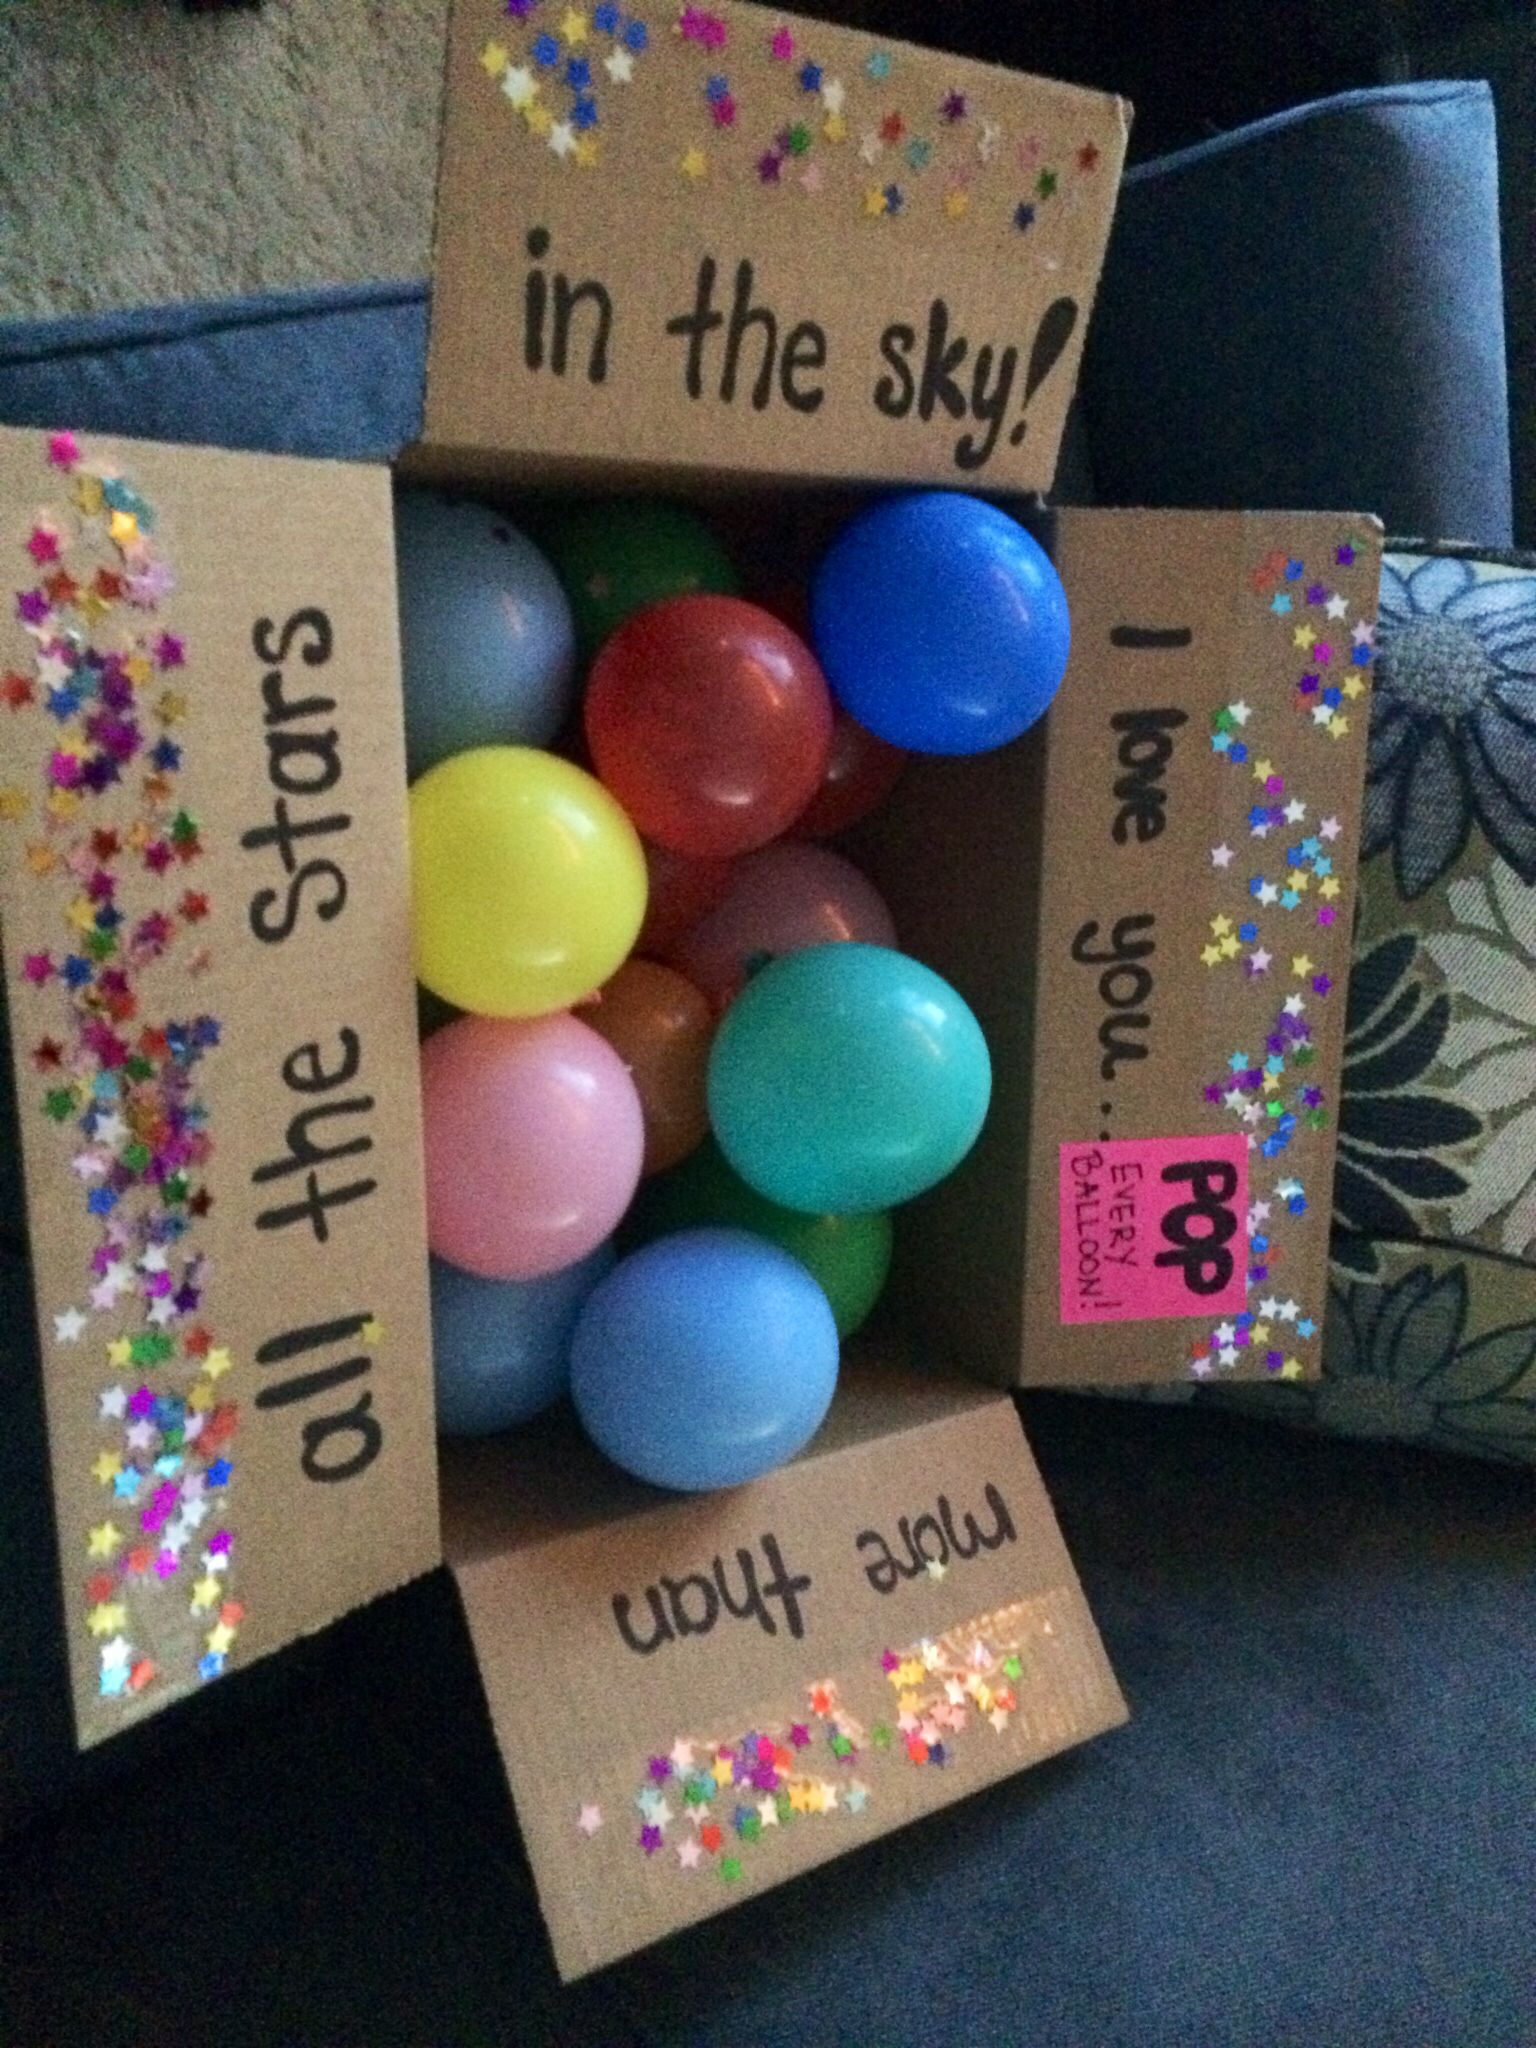 Long Distance Relationship Fun Package Idea Each Balloon Has A Message Inside With Something I Love Diy Valentines Gifts Valentines Gift Box Valentine Gifts